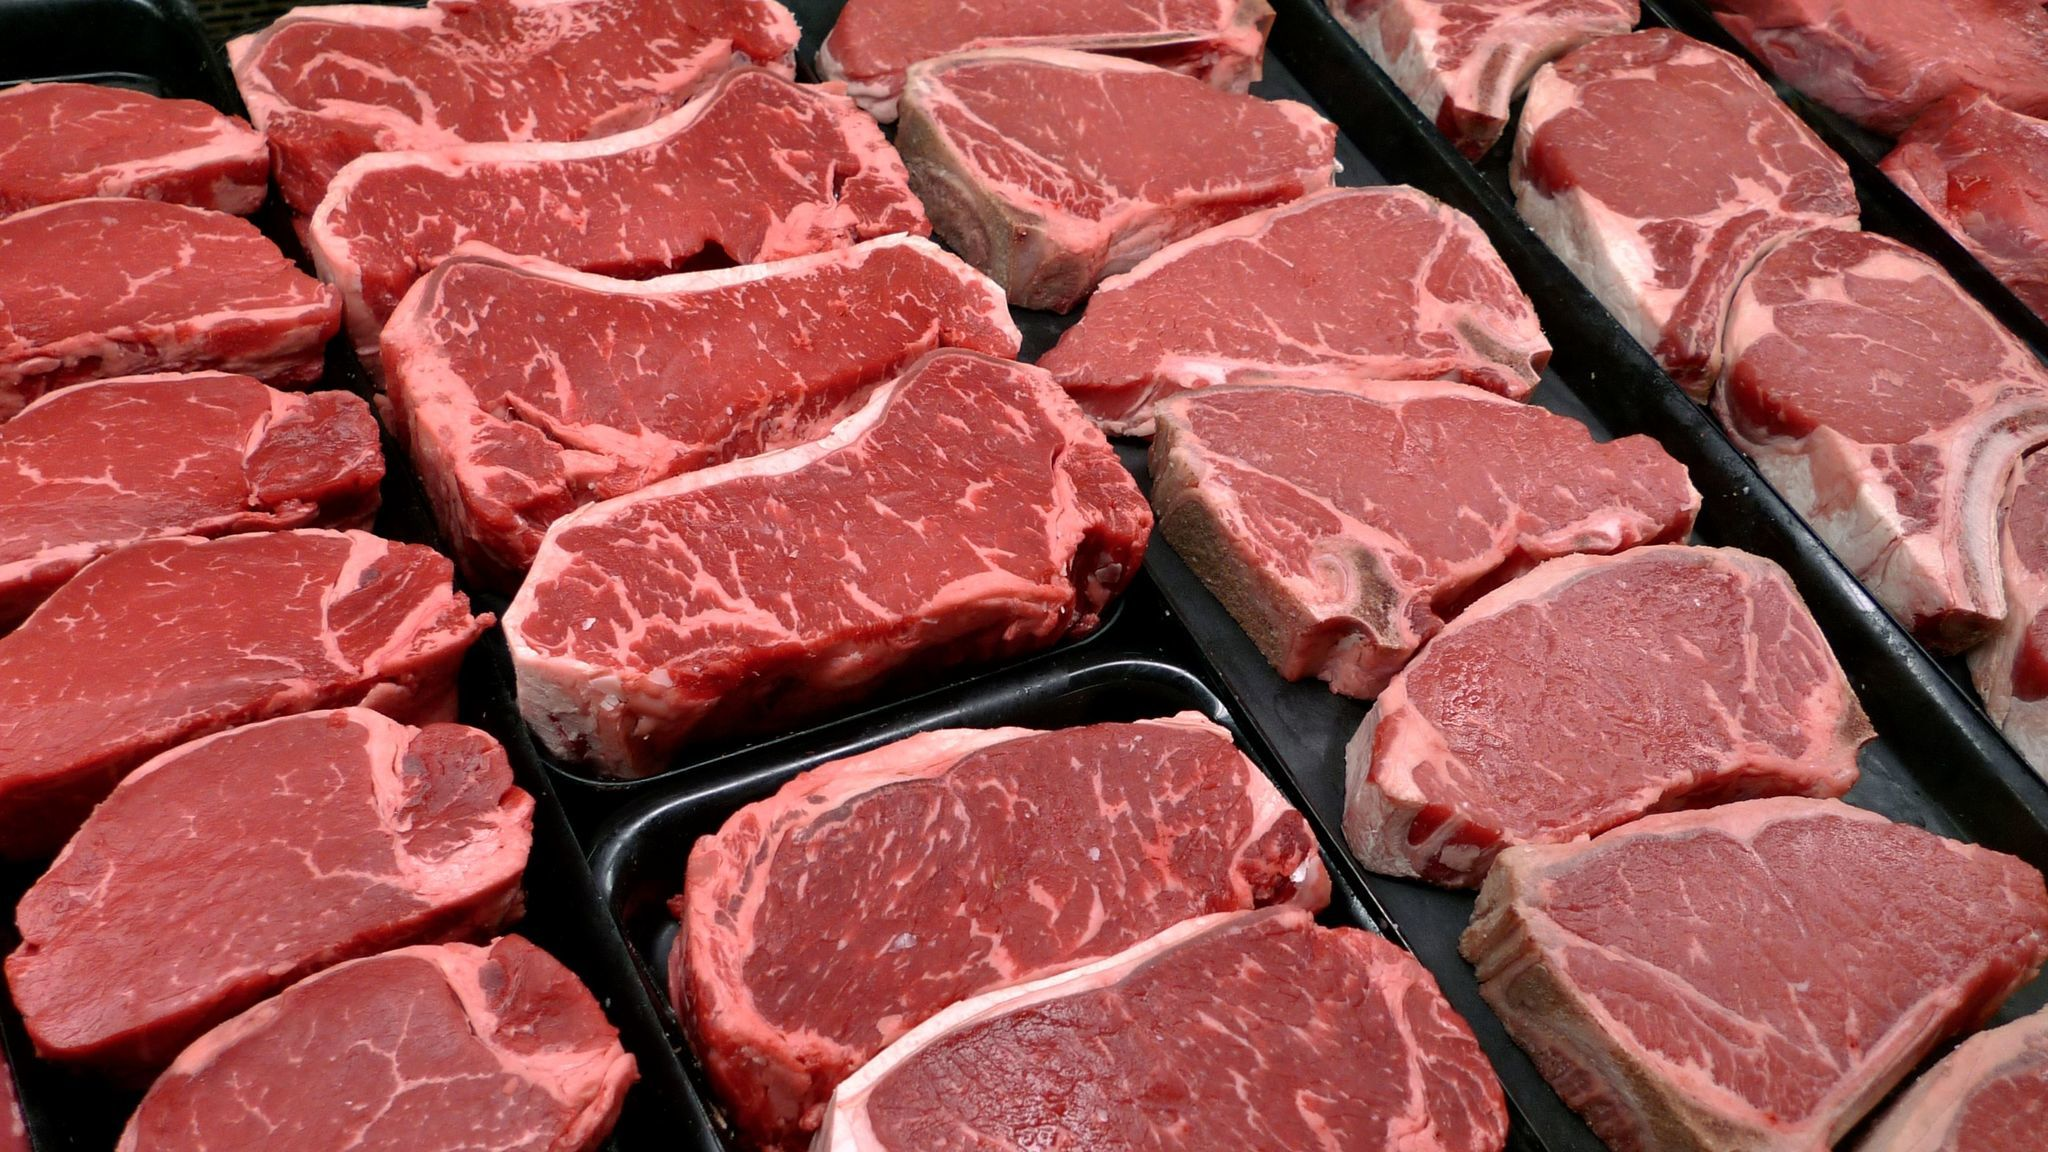 Red meat is rich in iron.